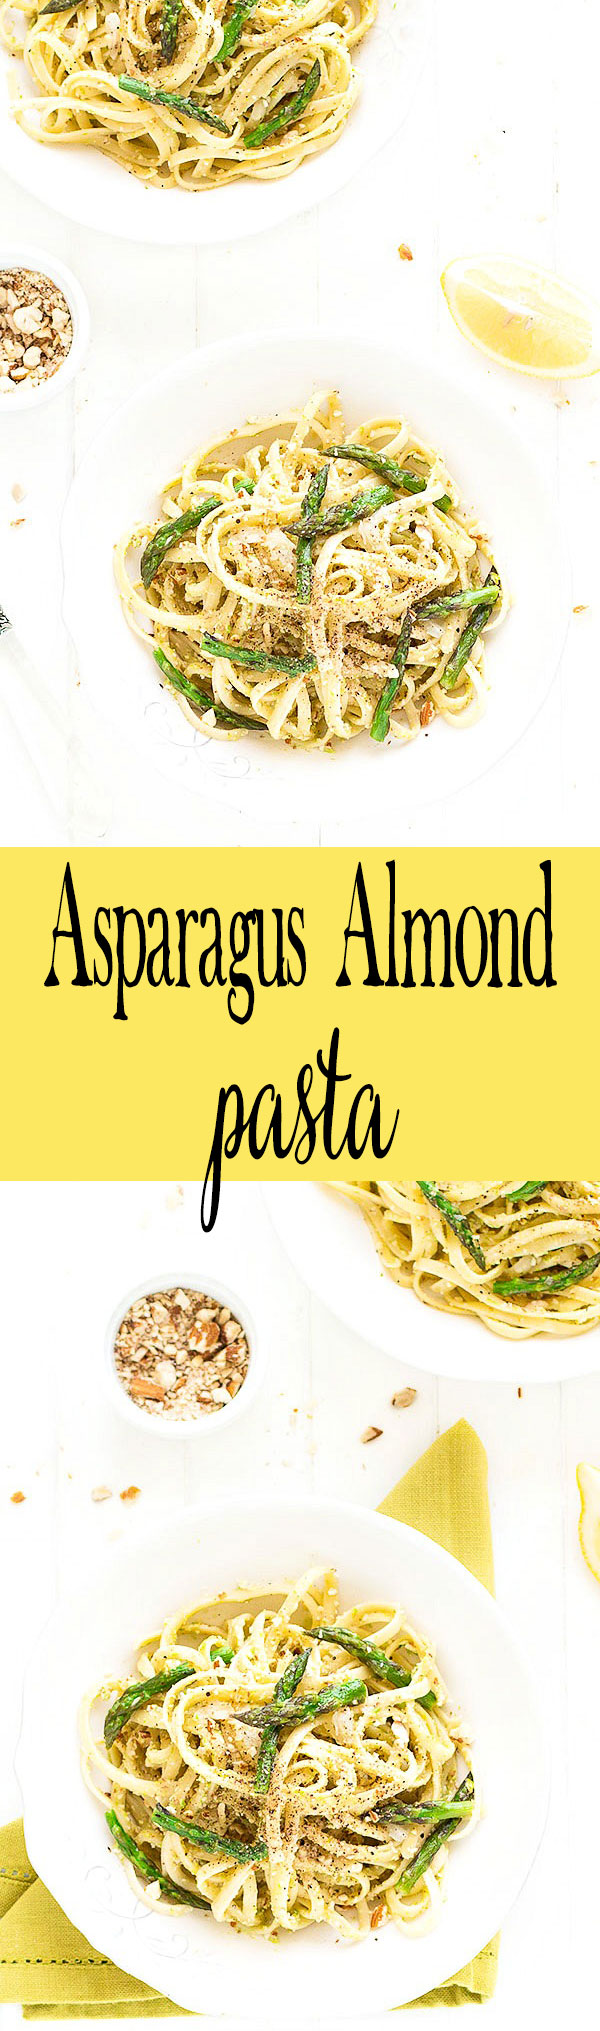 This asparagus almond pasta is simple, requiring just six ingredients and 15 minutes! Perfect for a quick and tasty weeknight meal.